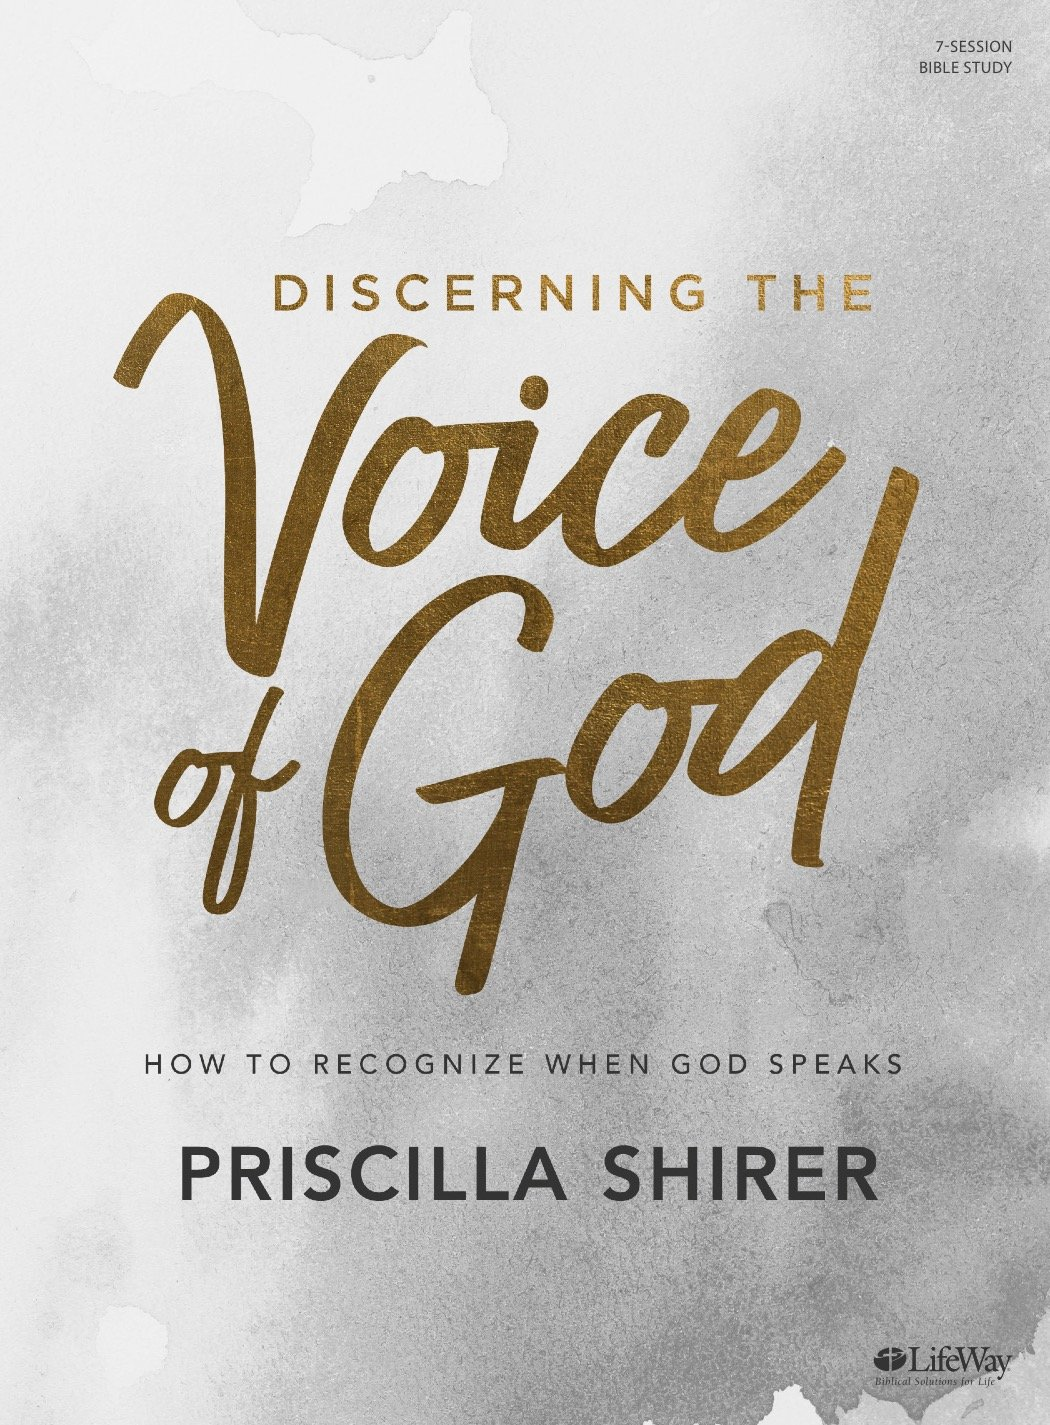 Discerning the Voice of God - Bible Study Book - Revised: How to Recognize When God Speaks by Lifeway Church Resources